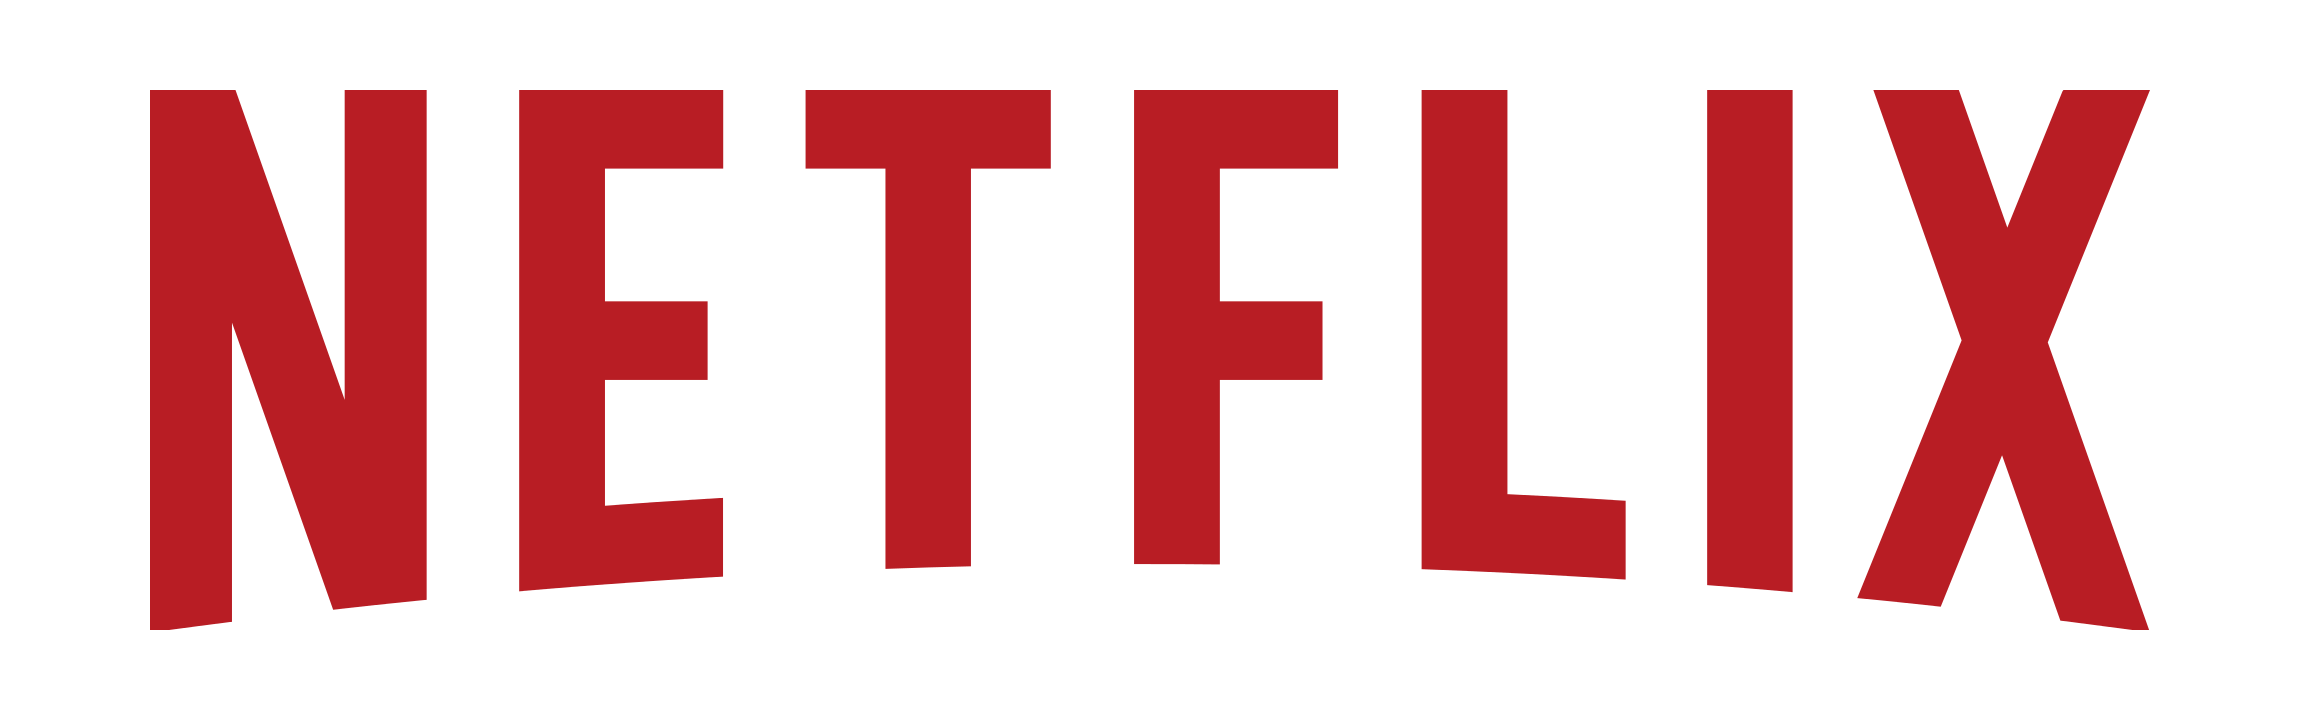 The Netflix logo. Red text, all capitals, on a white background.